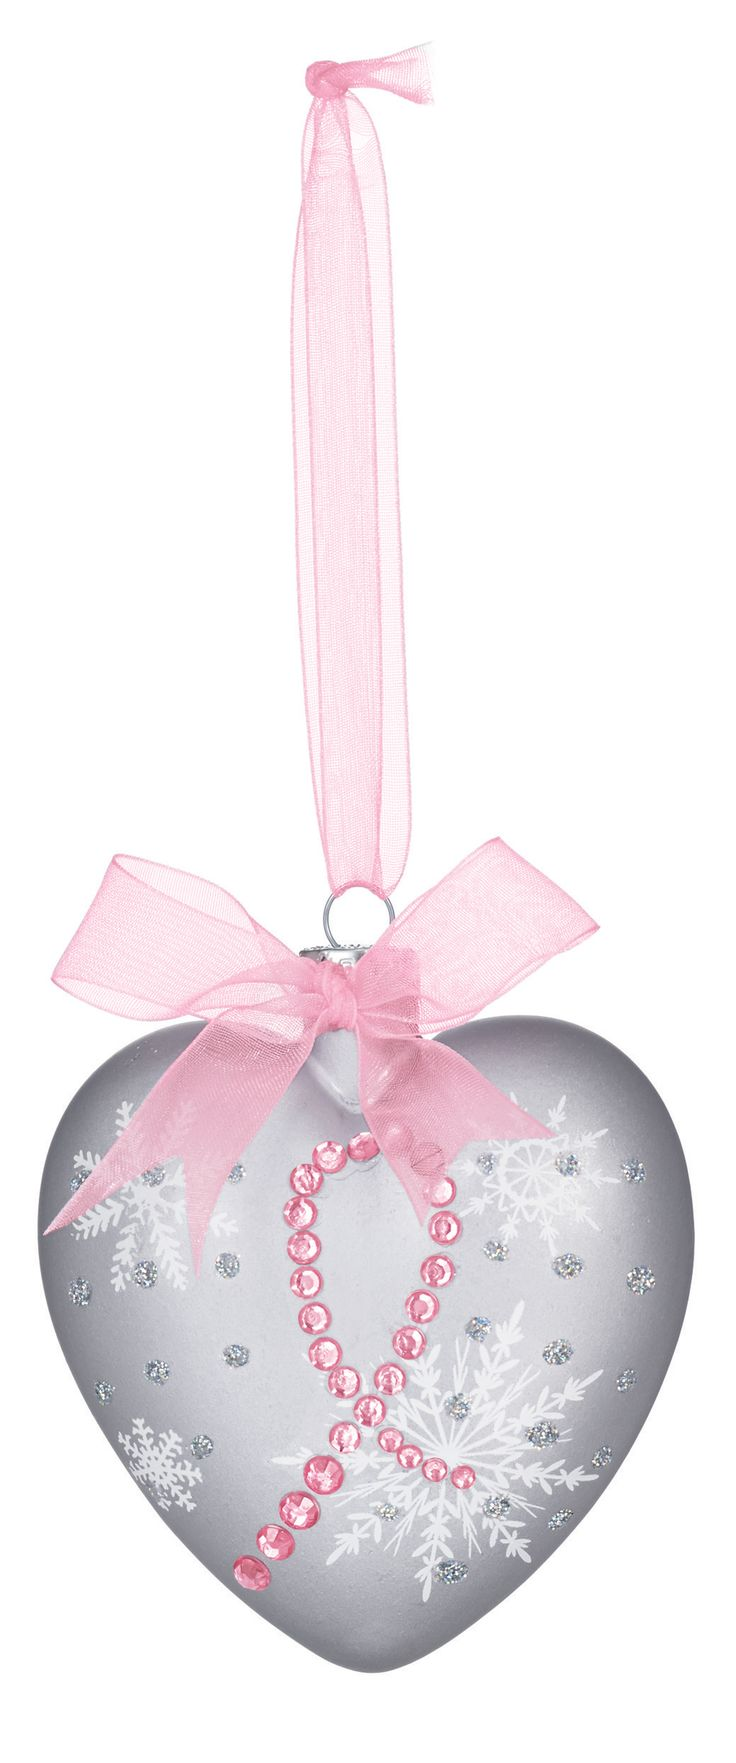 "A beautiful way to show your support. Glass ornament has a pink ribbon for hanging.   $1.00 will be donated to the Avon Foundation for Women Breast Cancer Crusade.   Approx. 4"" H x 3"" L."